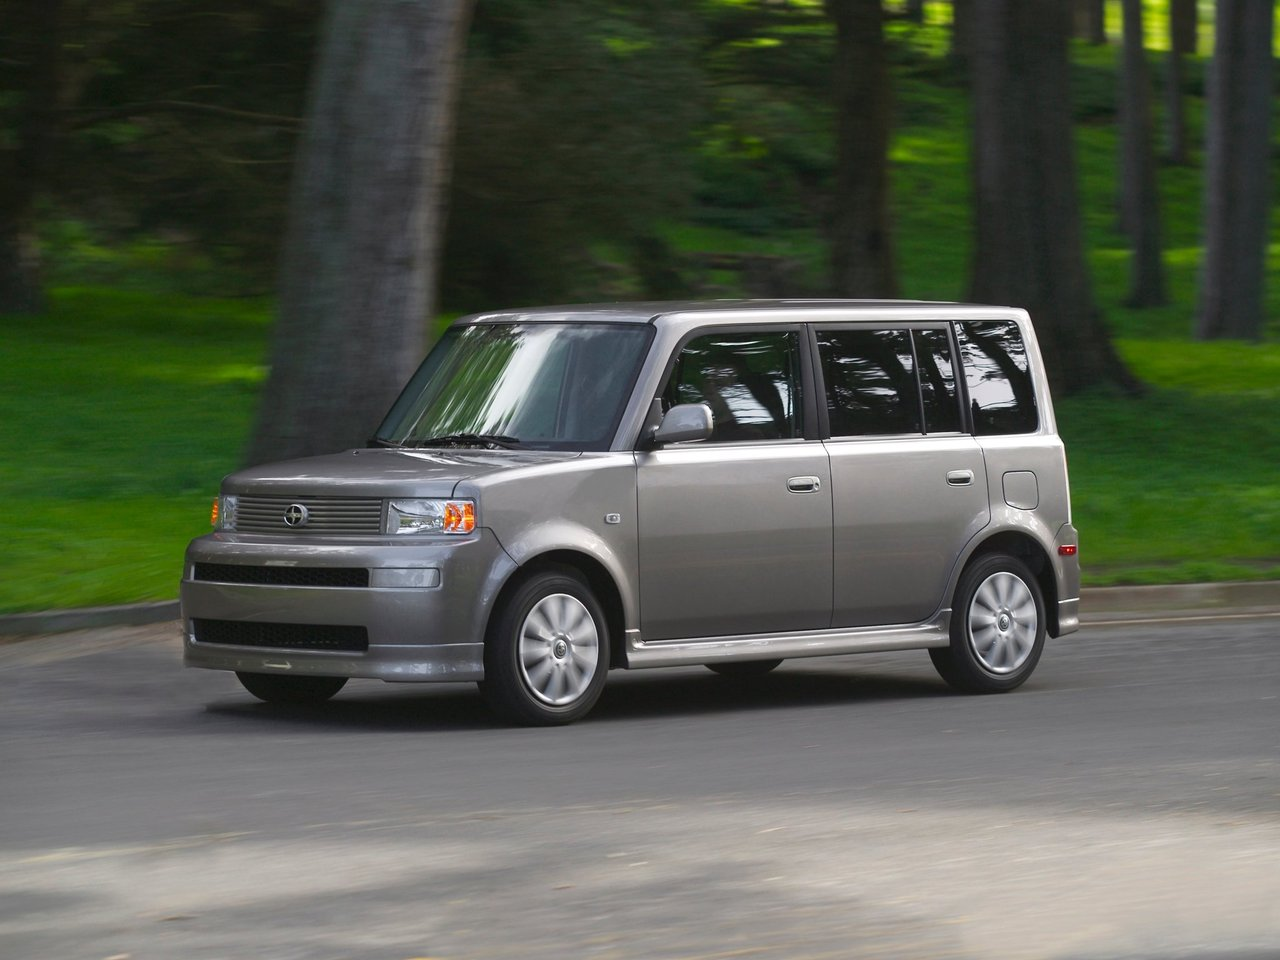 Автомобиль Scion xB